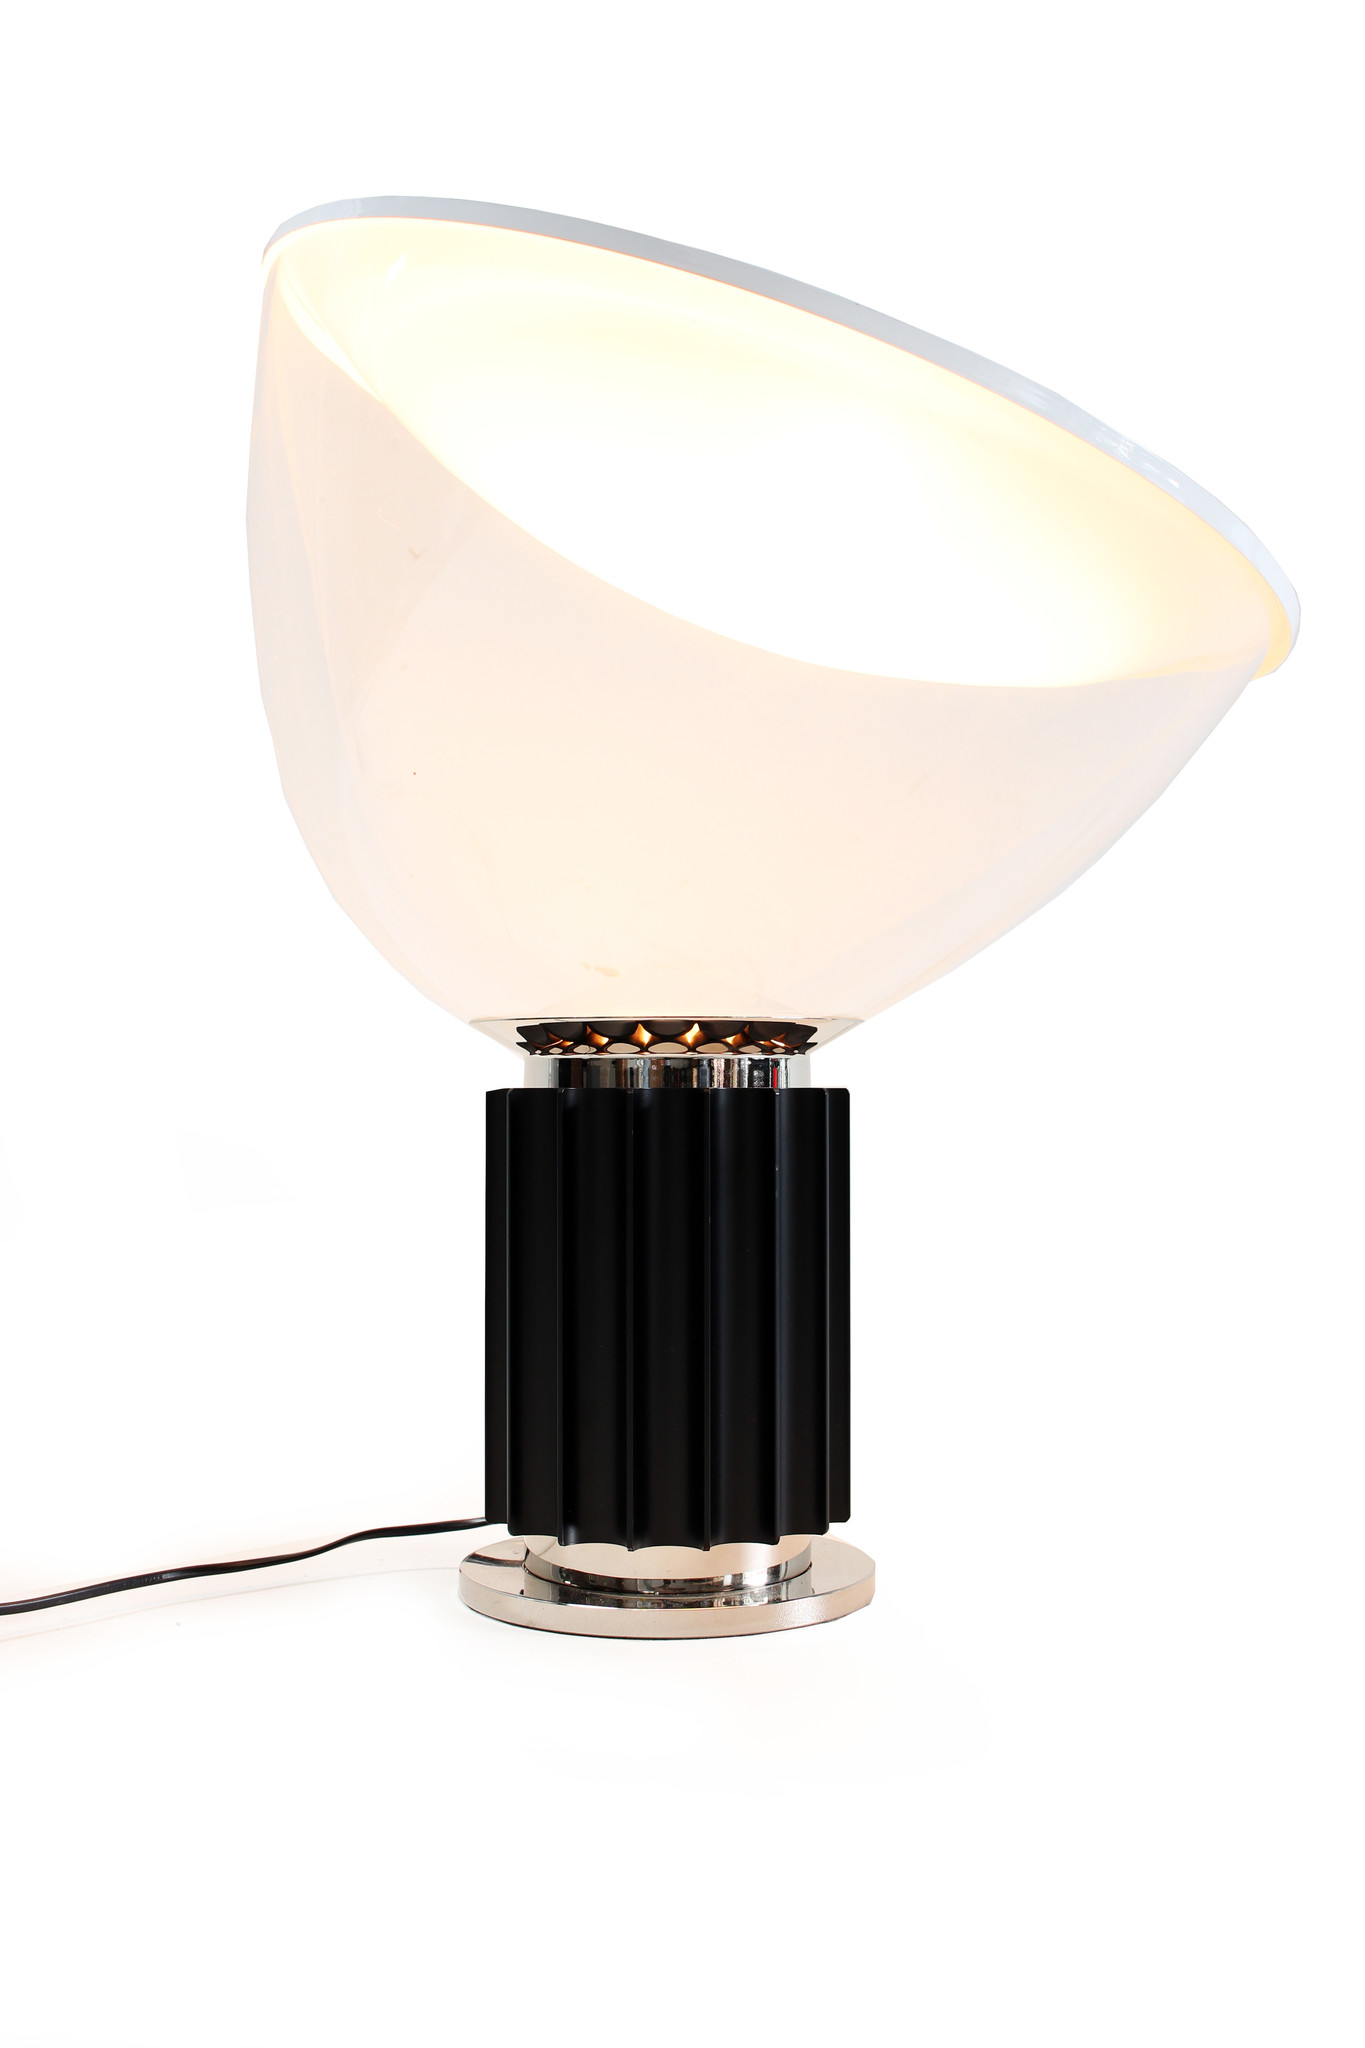 Flos table lamp Taccia with glass shade